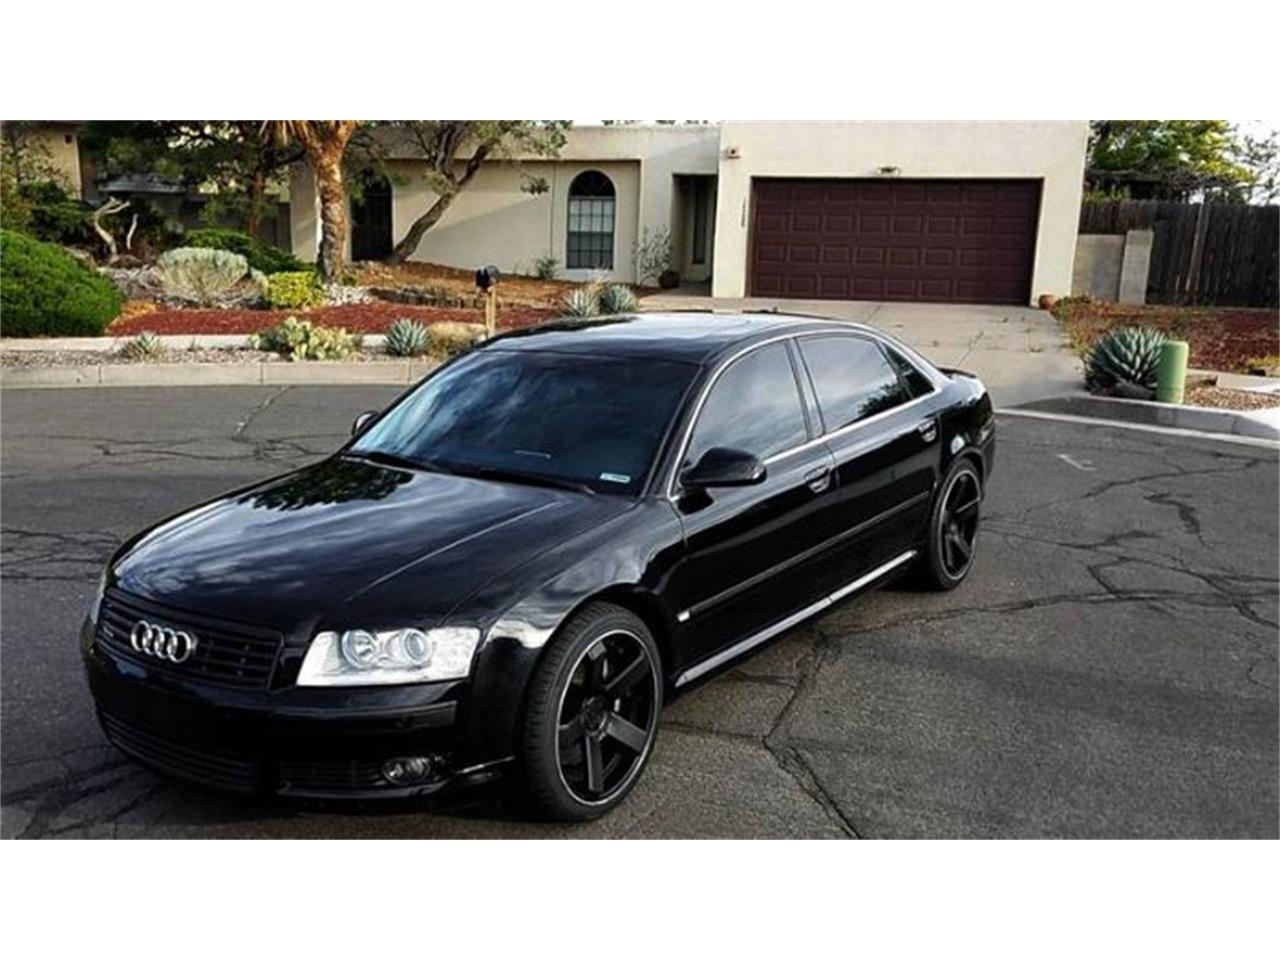 Large Picture of 2005 Audi A8 - $14,995.00 Offered by Classic Car Deals - O4UQ